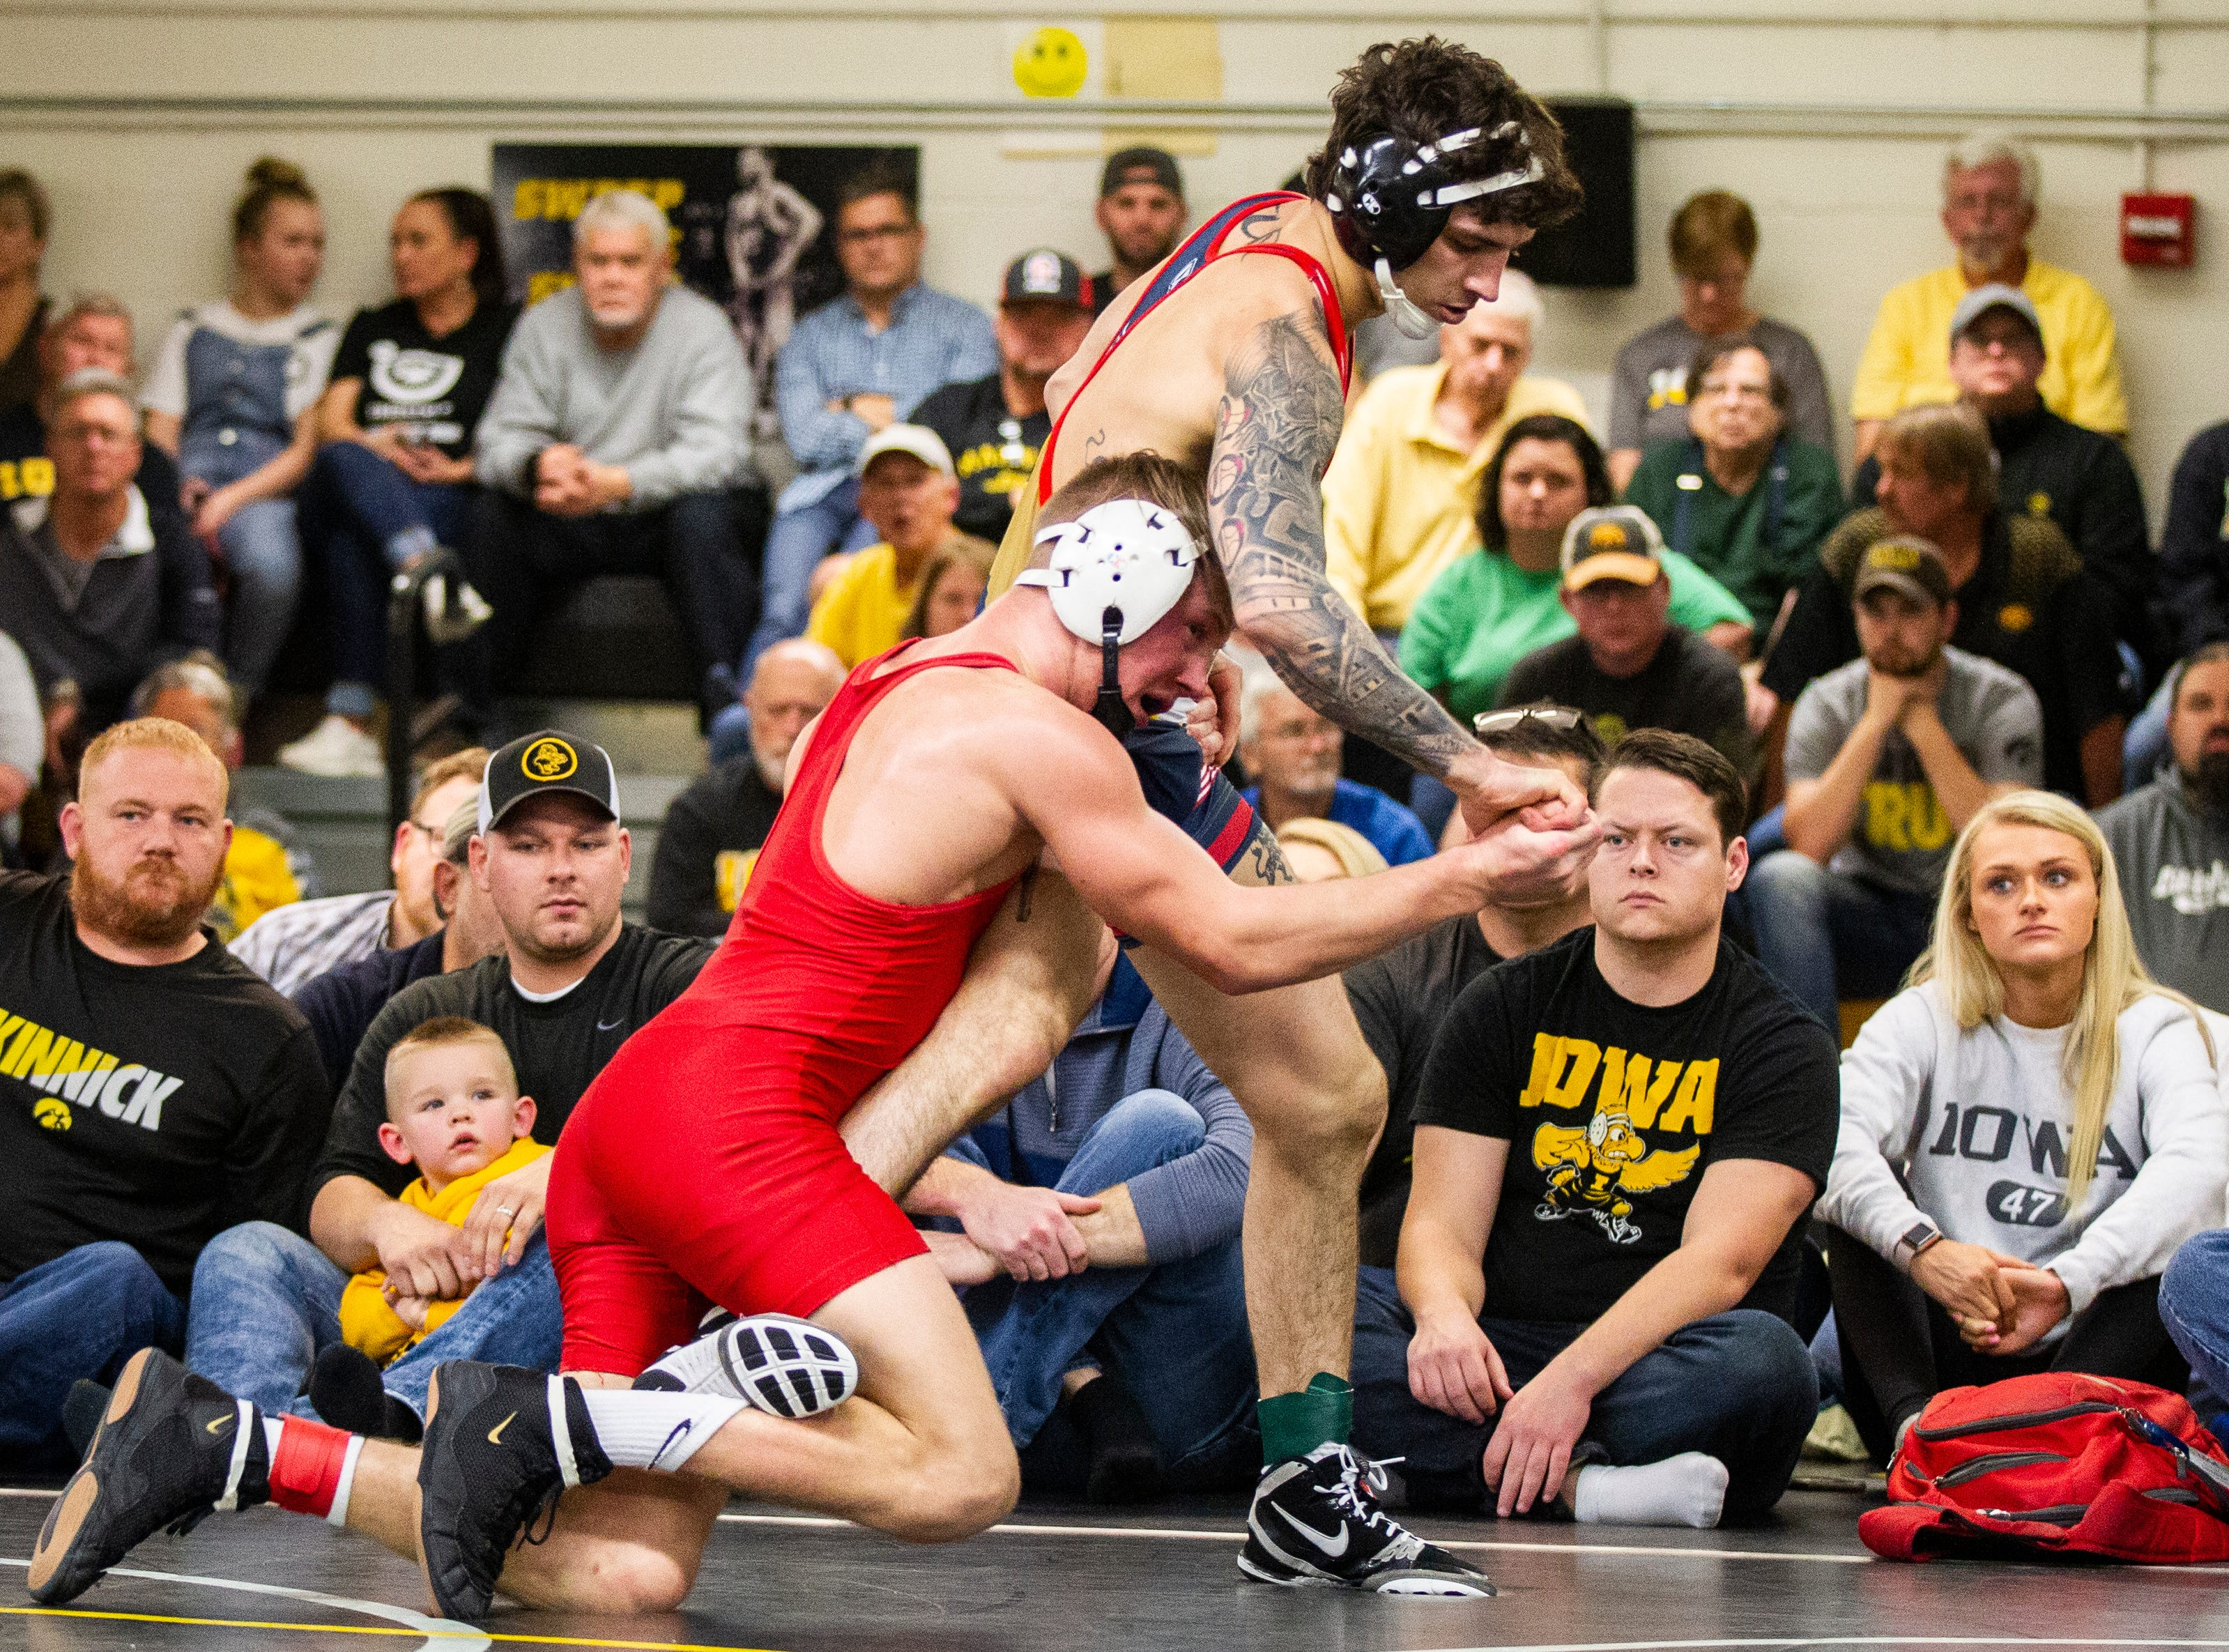 Iowa's Max Murin (left) wrestles Vince Turk at 141 during the wrestle-offs on Friday, Nov. 2, 2018, inside the Dan Gable Wrestling Complex at Carver-Hawkeye Arena in Iowa City.